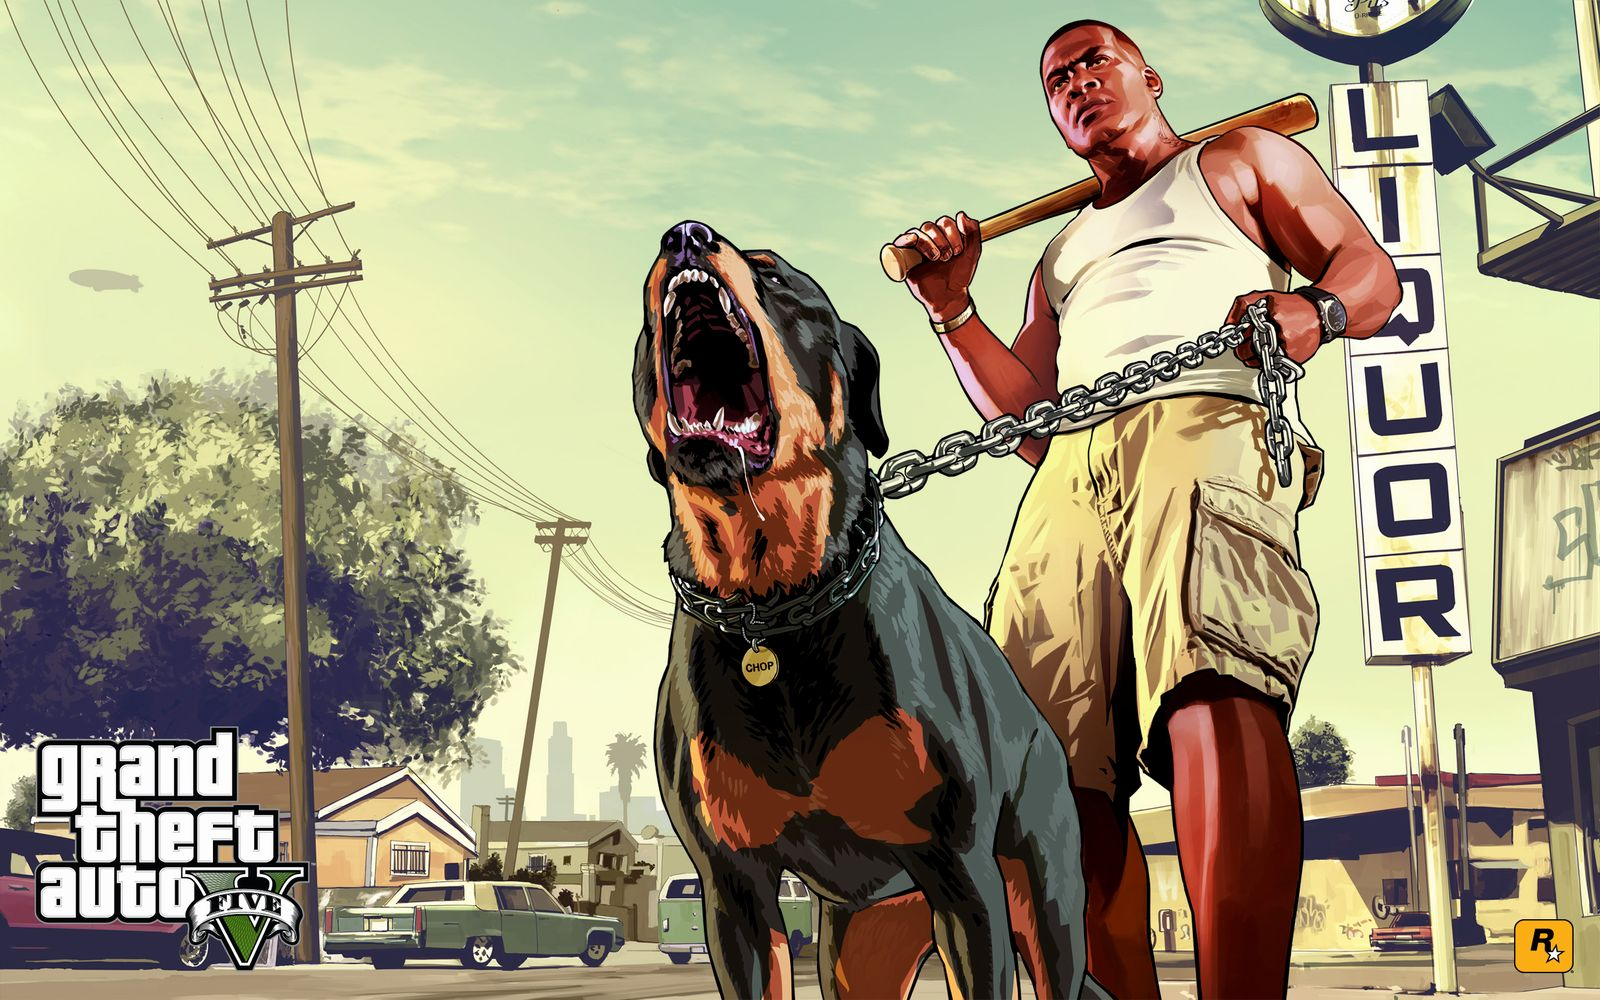 Man and dog wallpaper gta 5